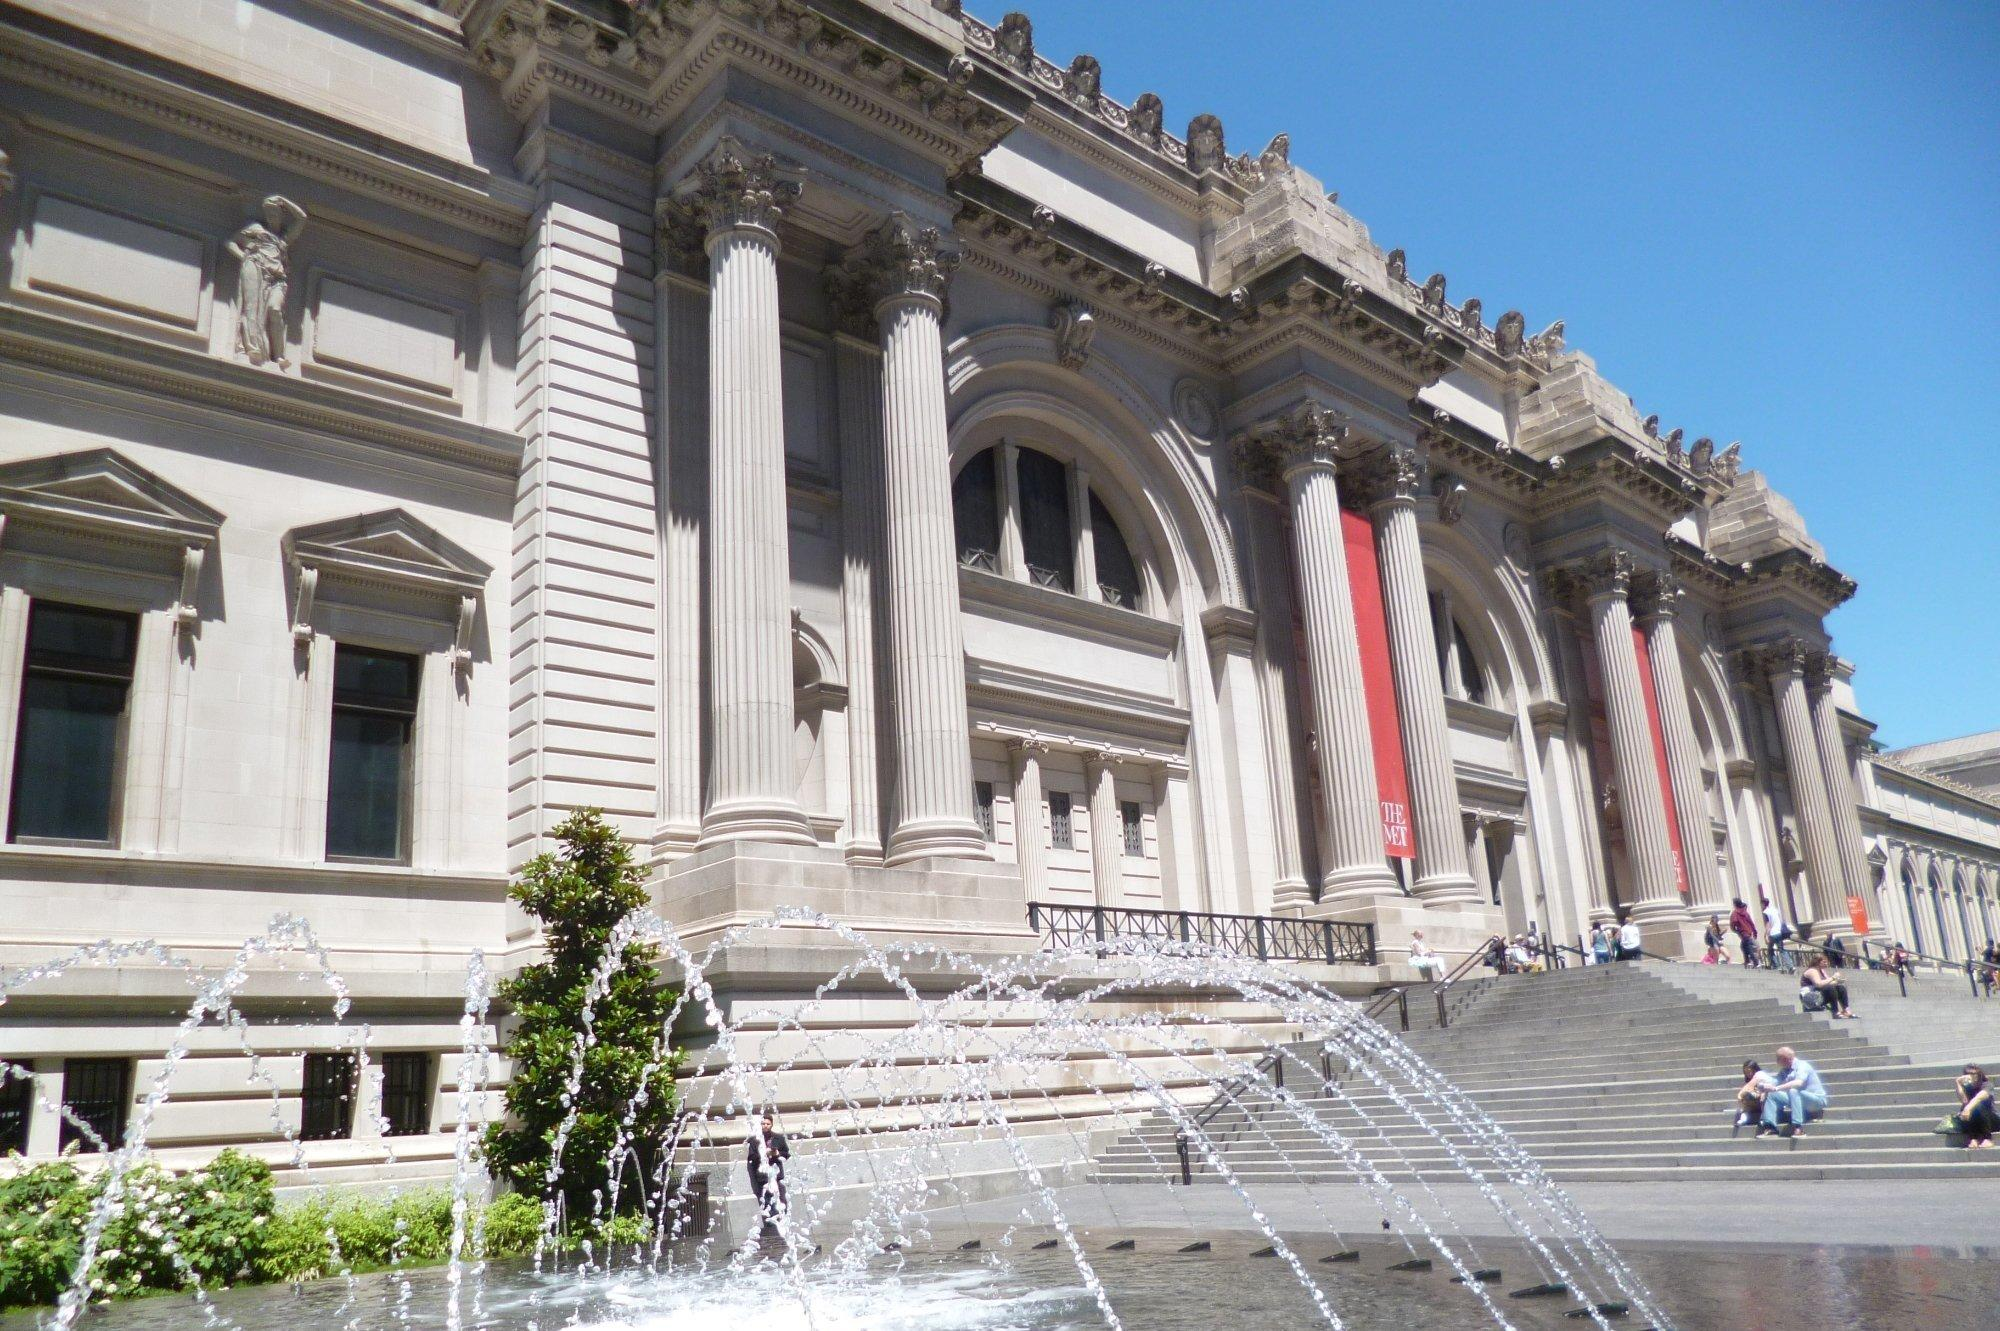 """The <a href=""""http://www.metmuseum.org/"""" target=""""_blank"""">Metropolitan Museum of Art</a>, better known as the Met, is the biggest museum in the US and one of the best known and most visited in the world. It houses a wide range of collections, from Egyptian art to musical instruments and armour."""